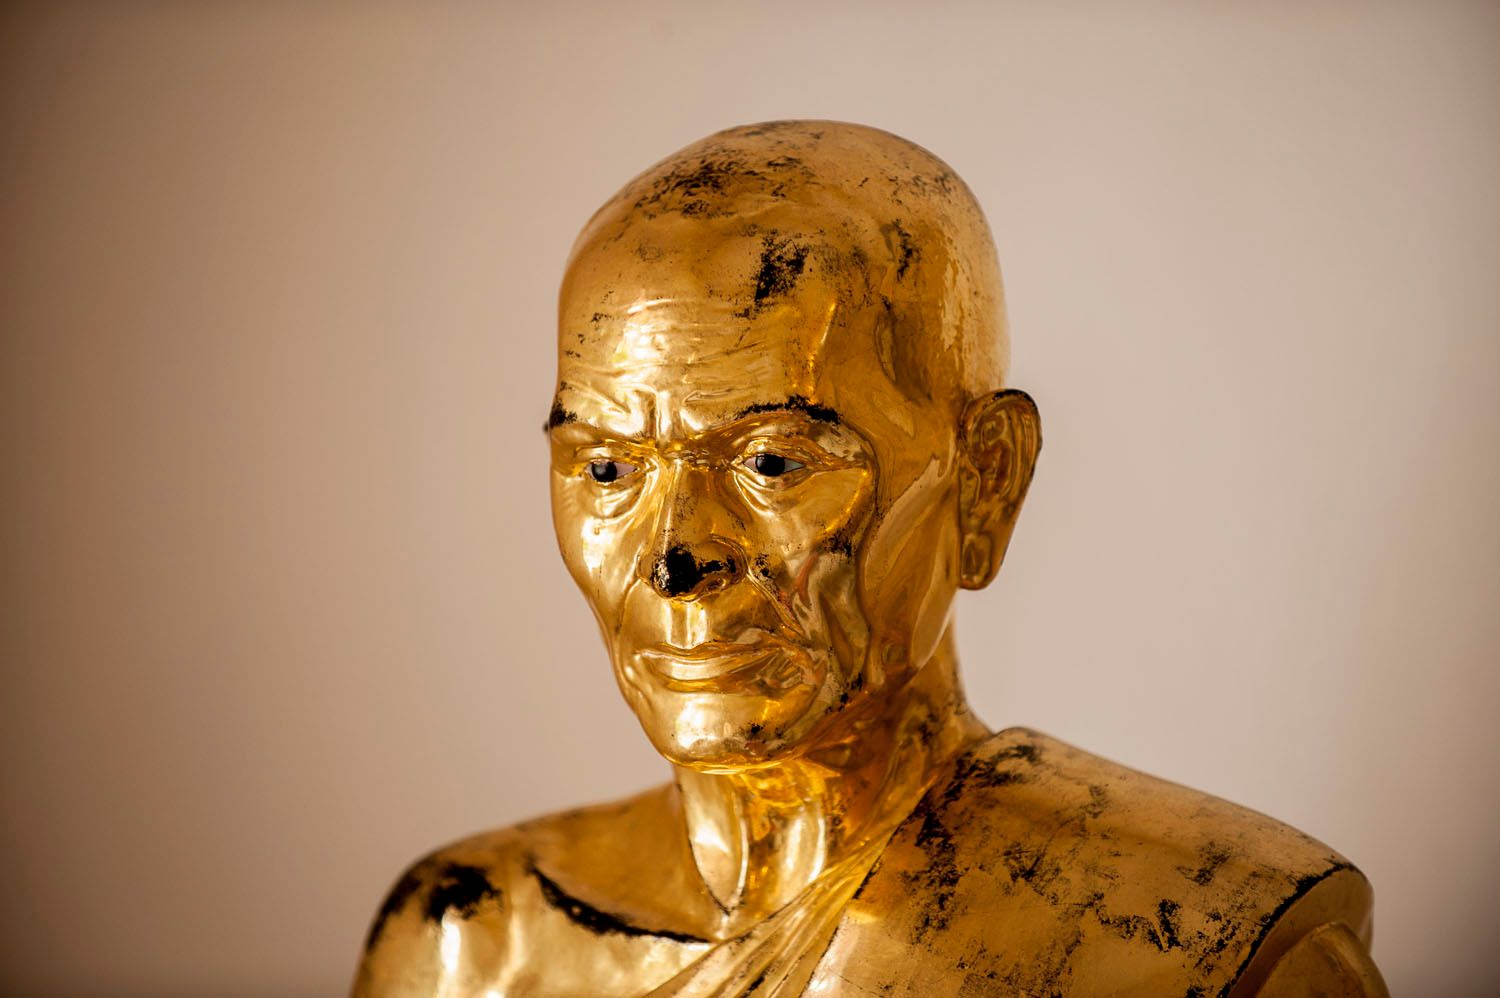 Gold Statue of Buddhist Monk